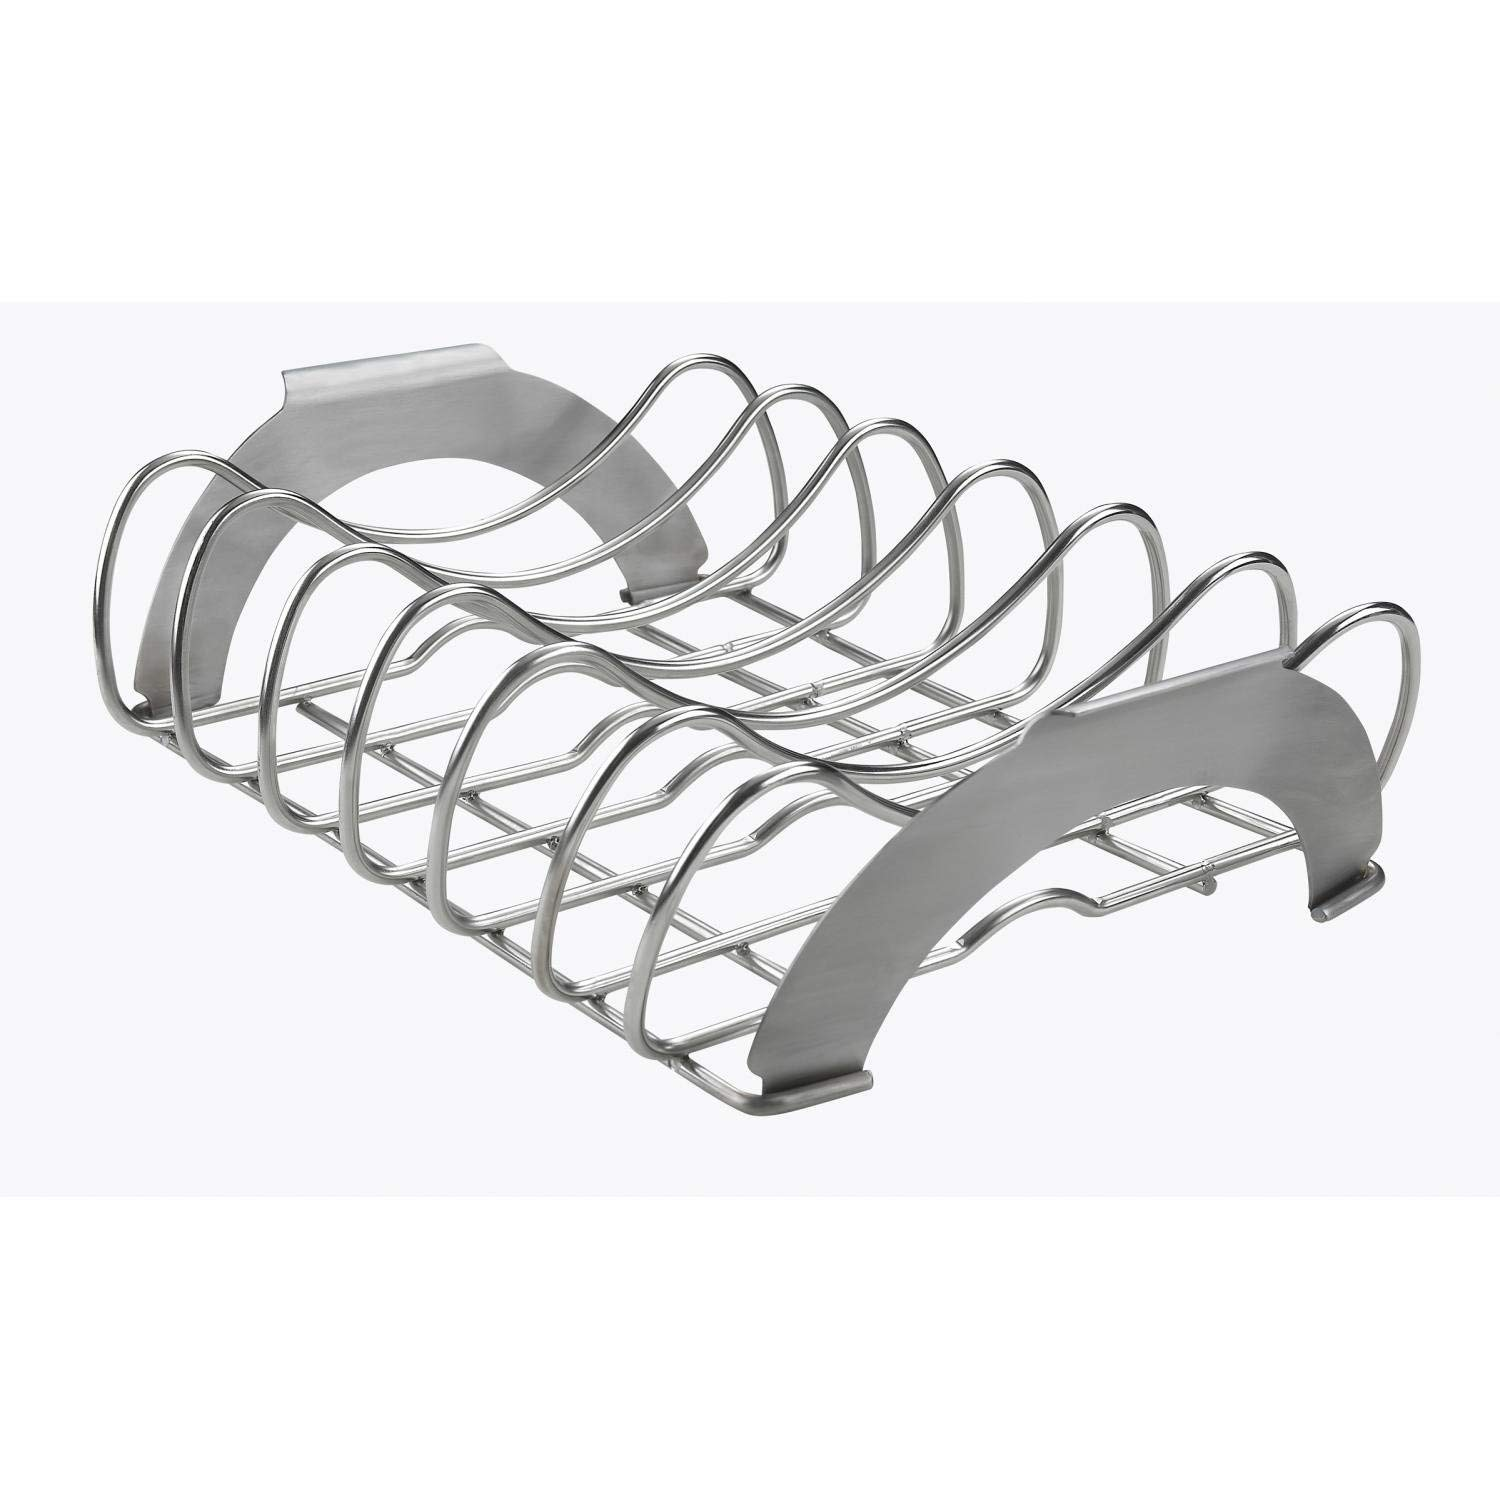 Napoleon PRO Stainless Steel Rib/Roast Rack by Unknown